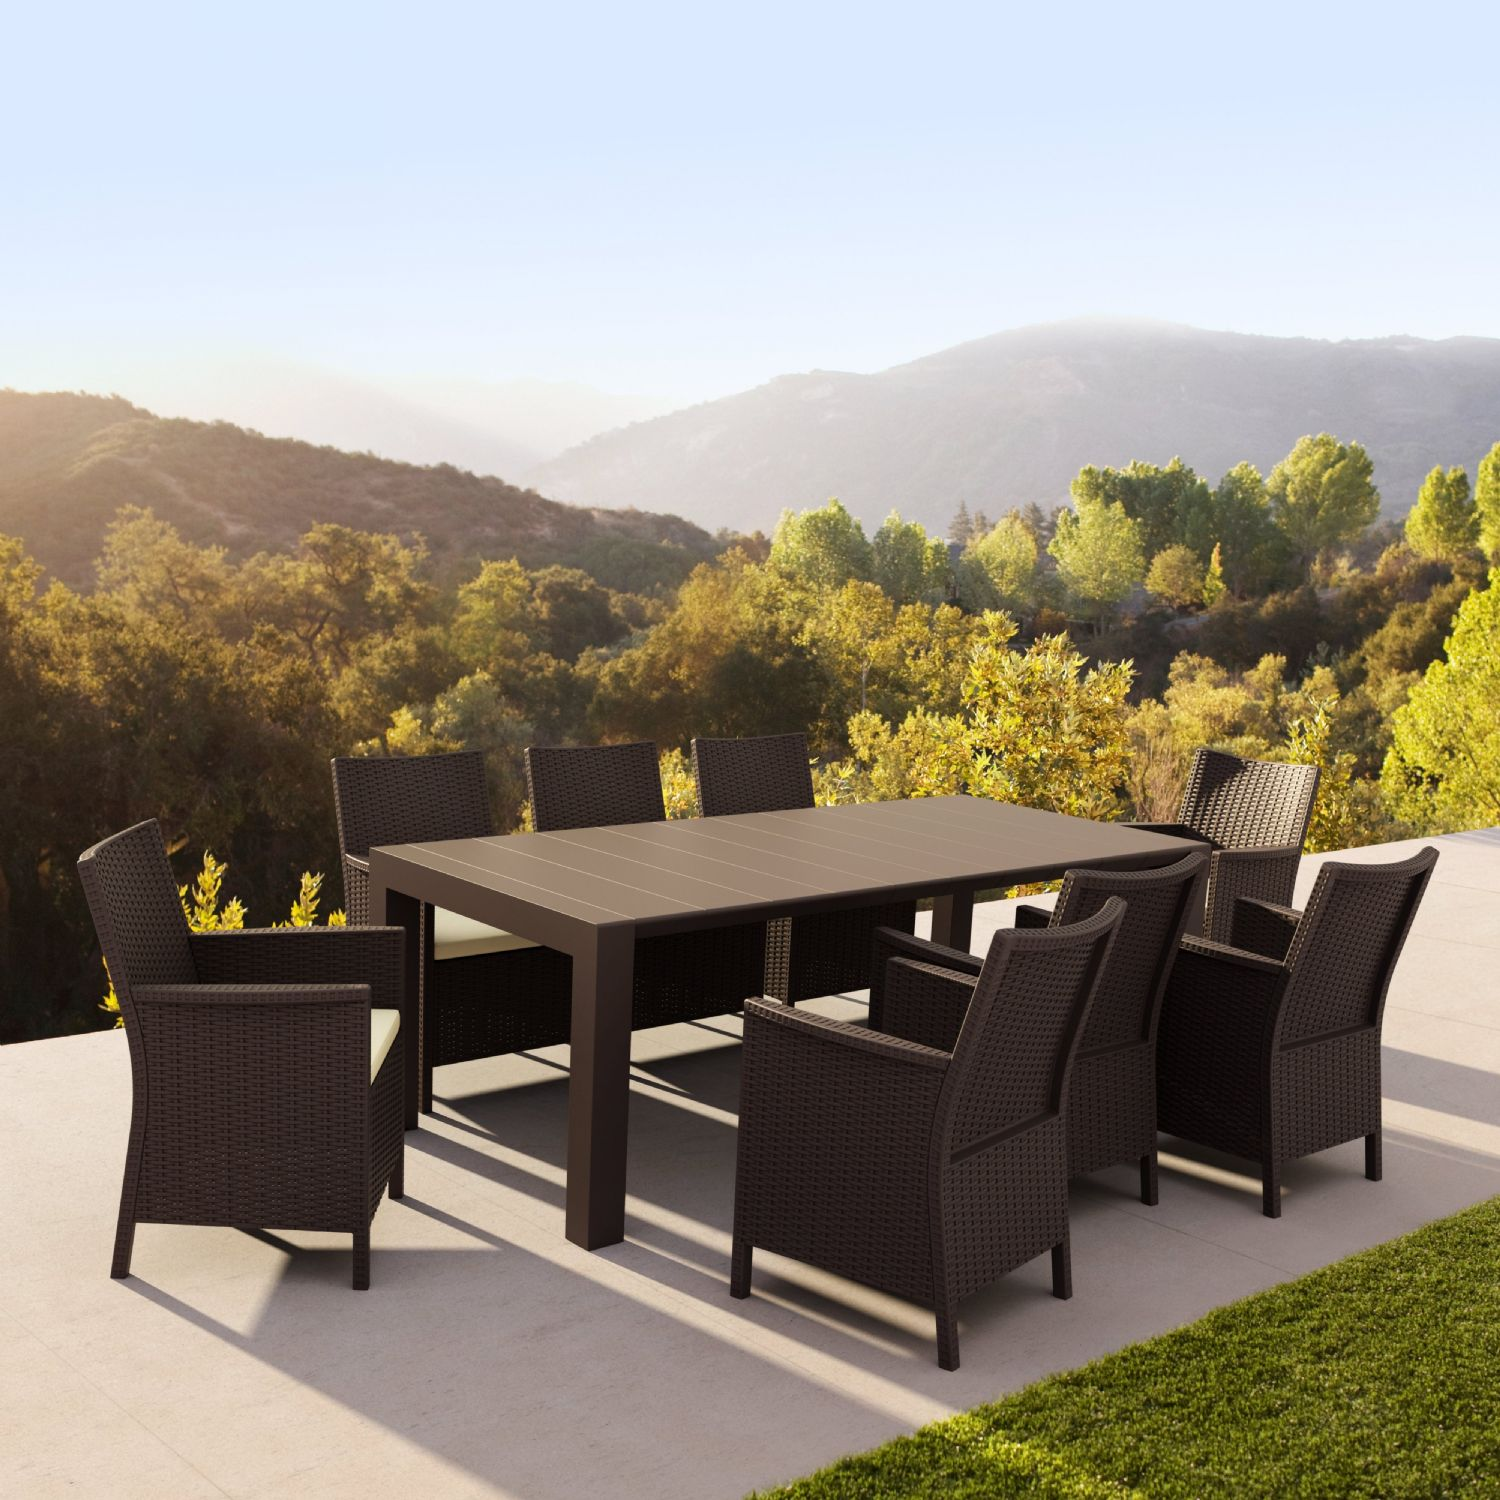 Vegas Outdoor Dining Table Extendable from 70 to 86 inch Dark Gray ISP774-DG - 4